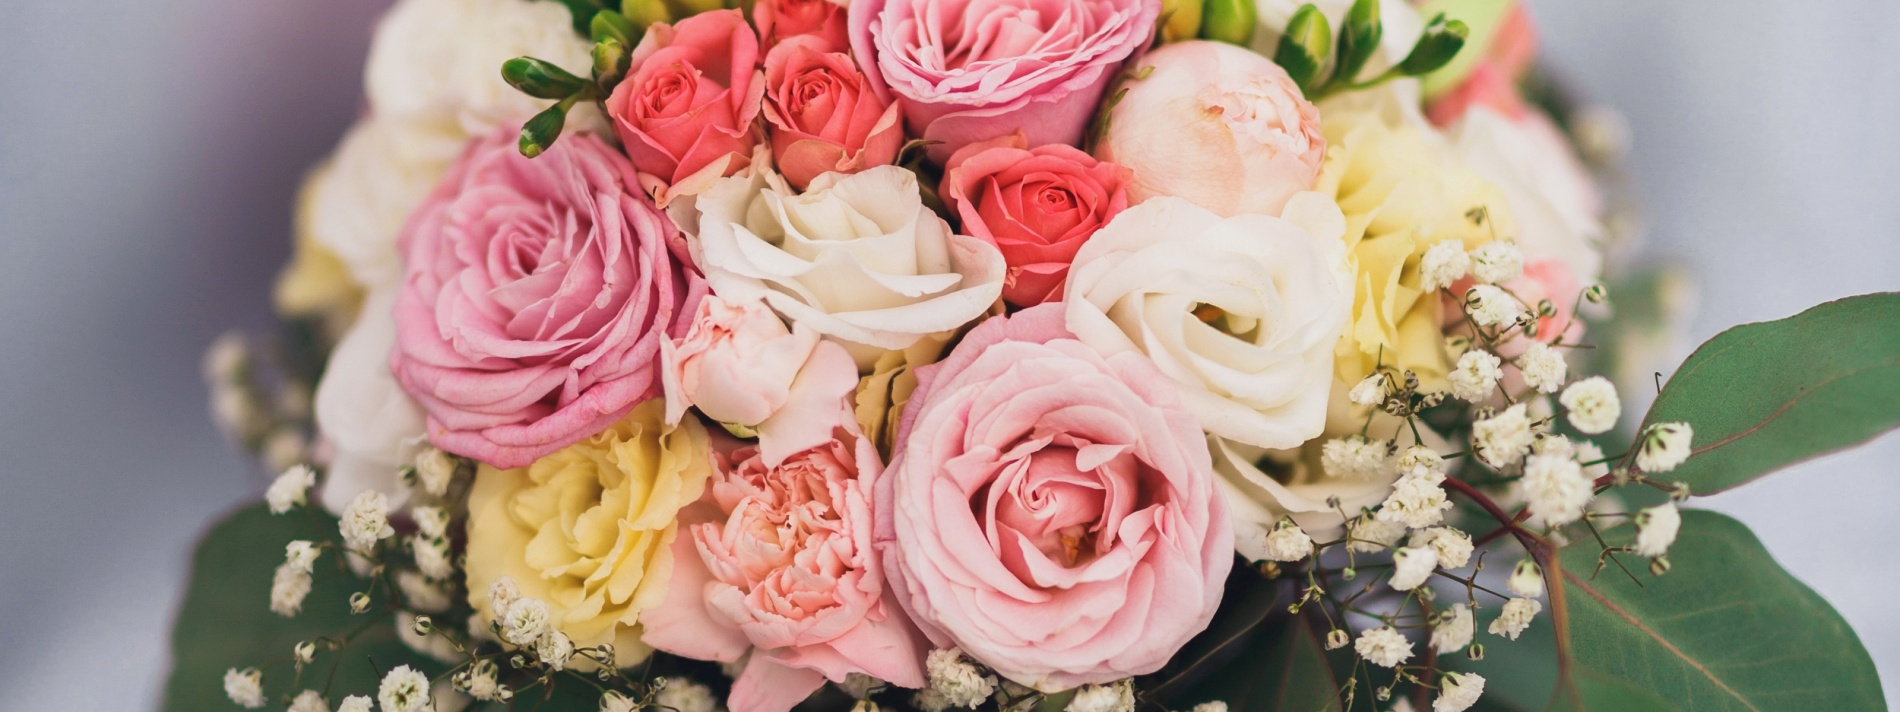 bouquet-roses-wedding-buket-svadba-rozy-eustoma-freziia.jpg